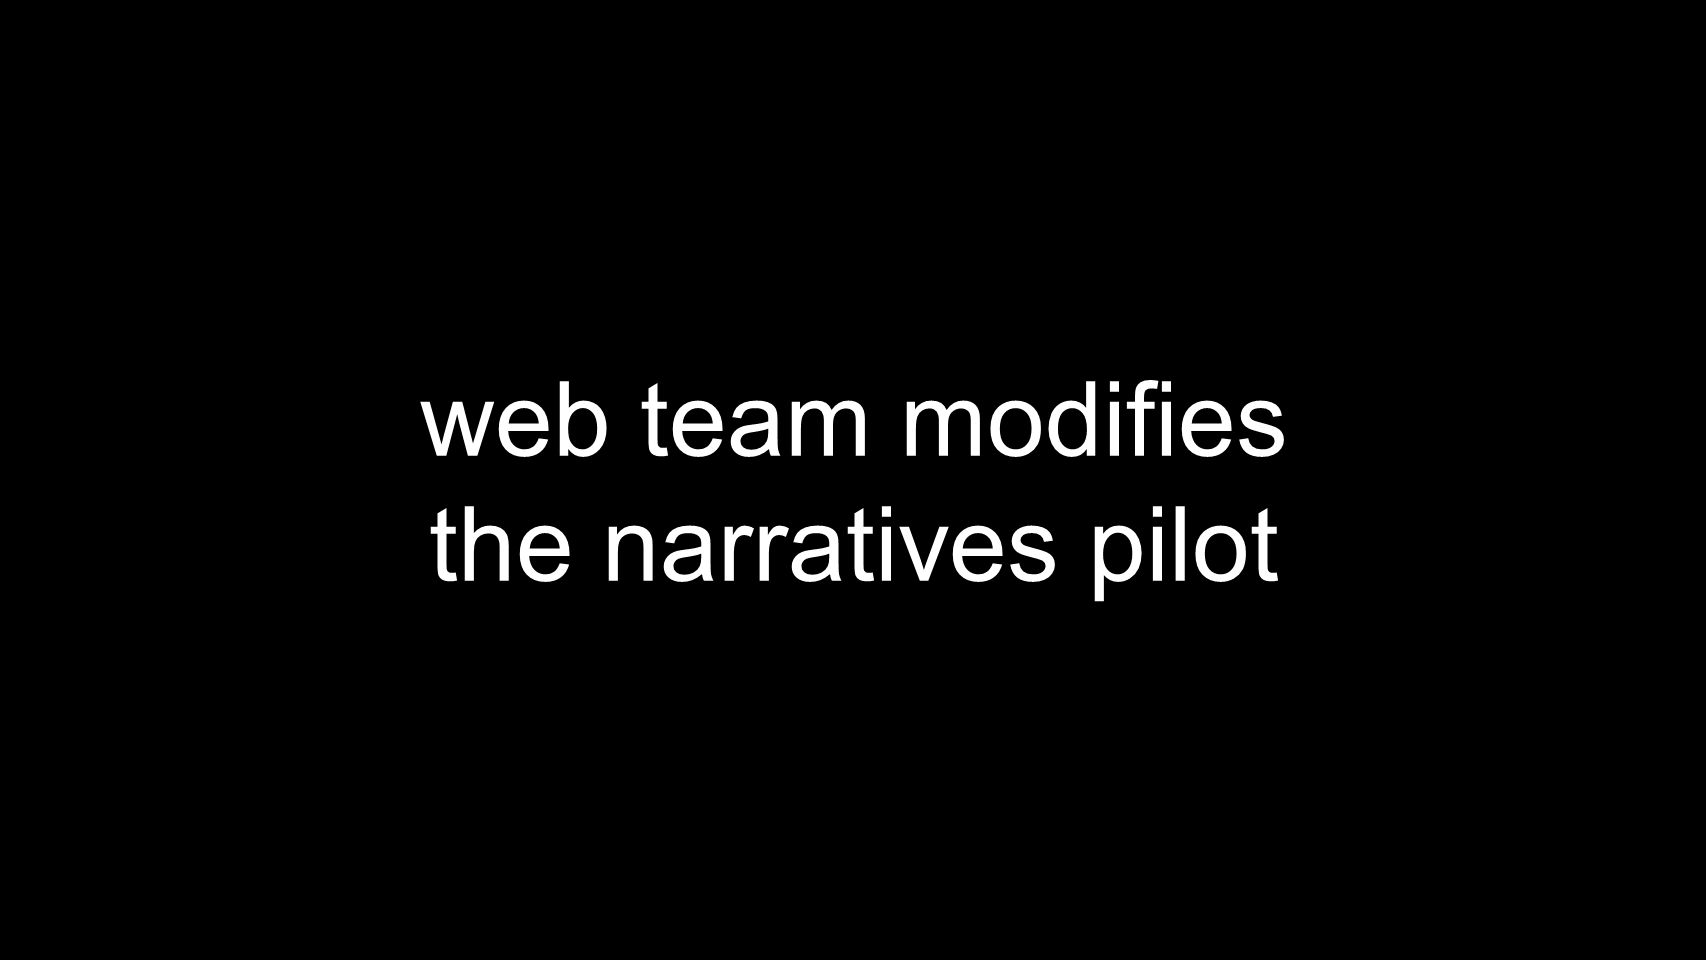 web team modifies the narratives pilot